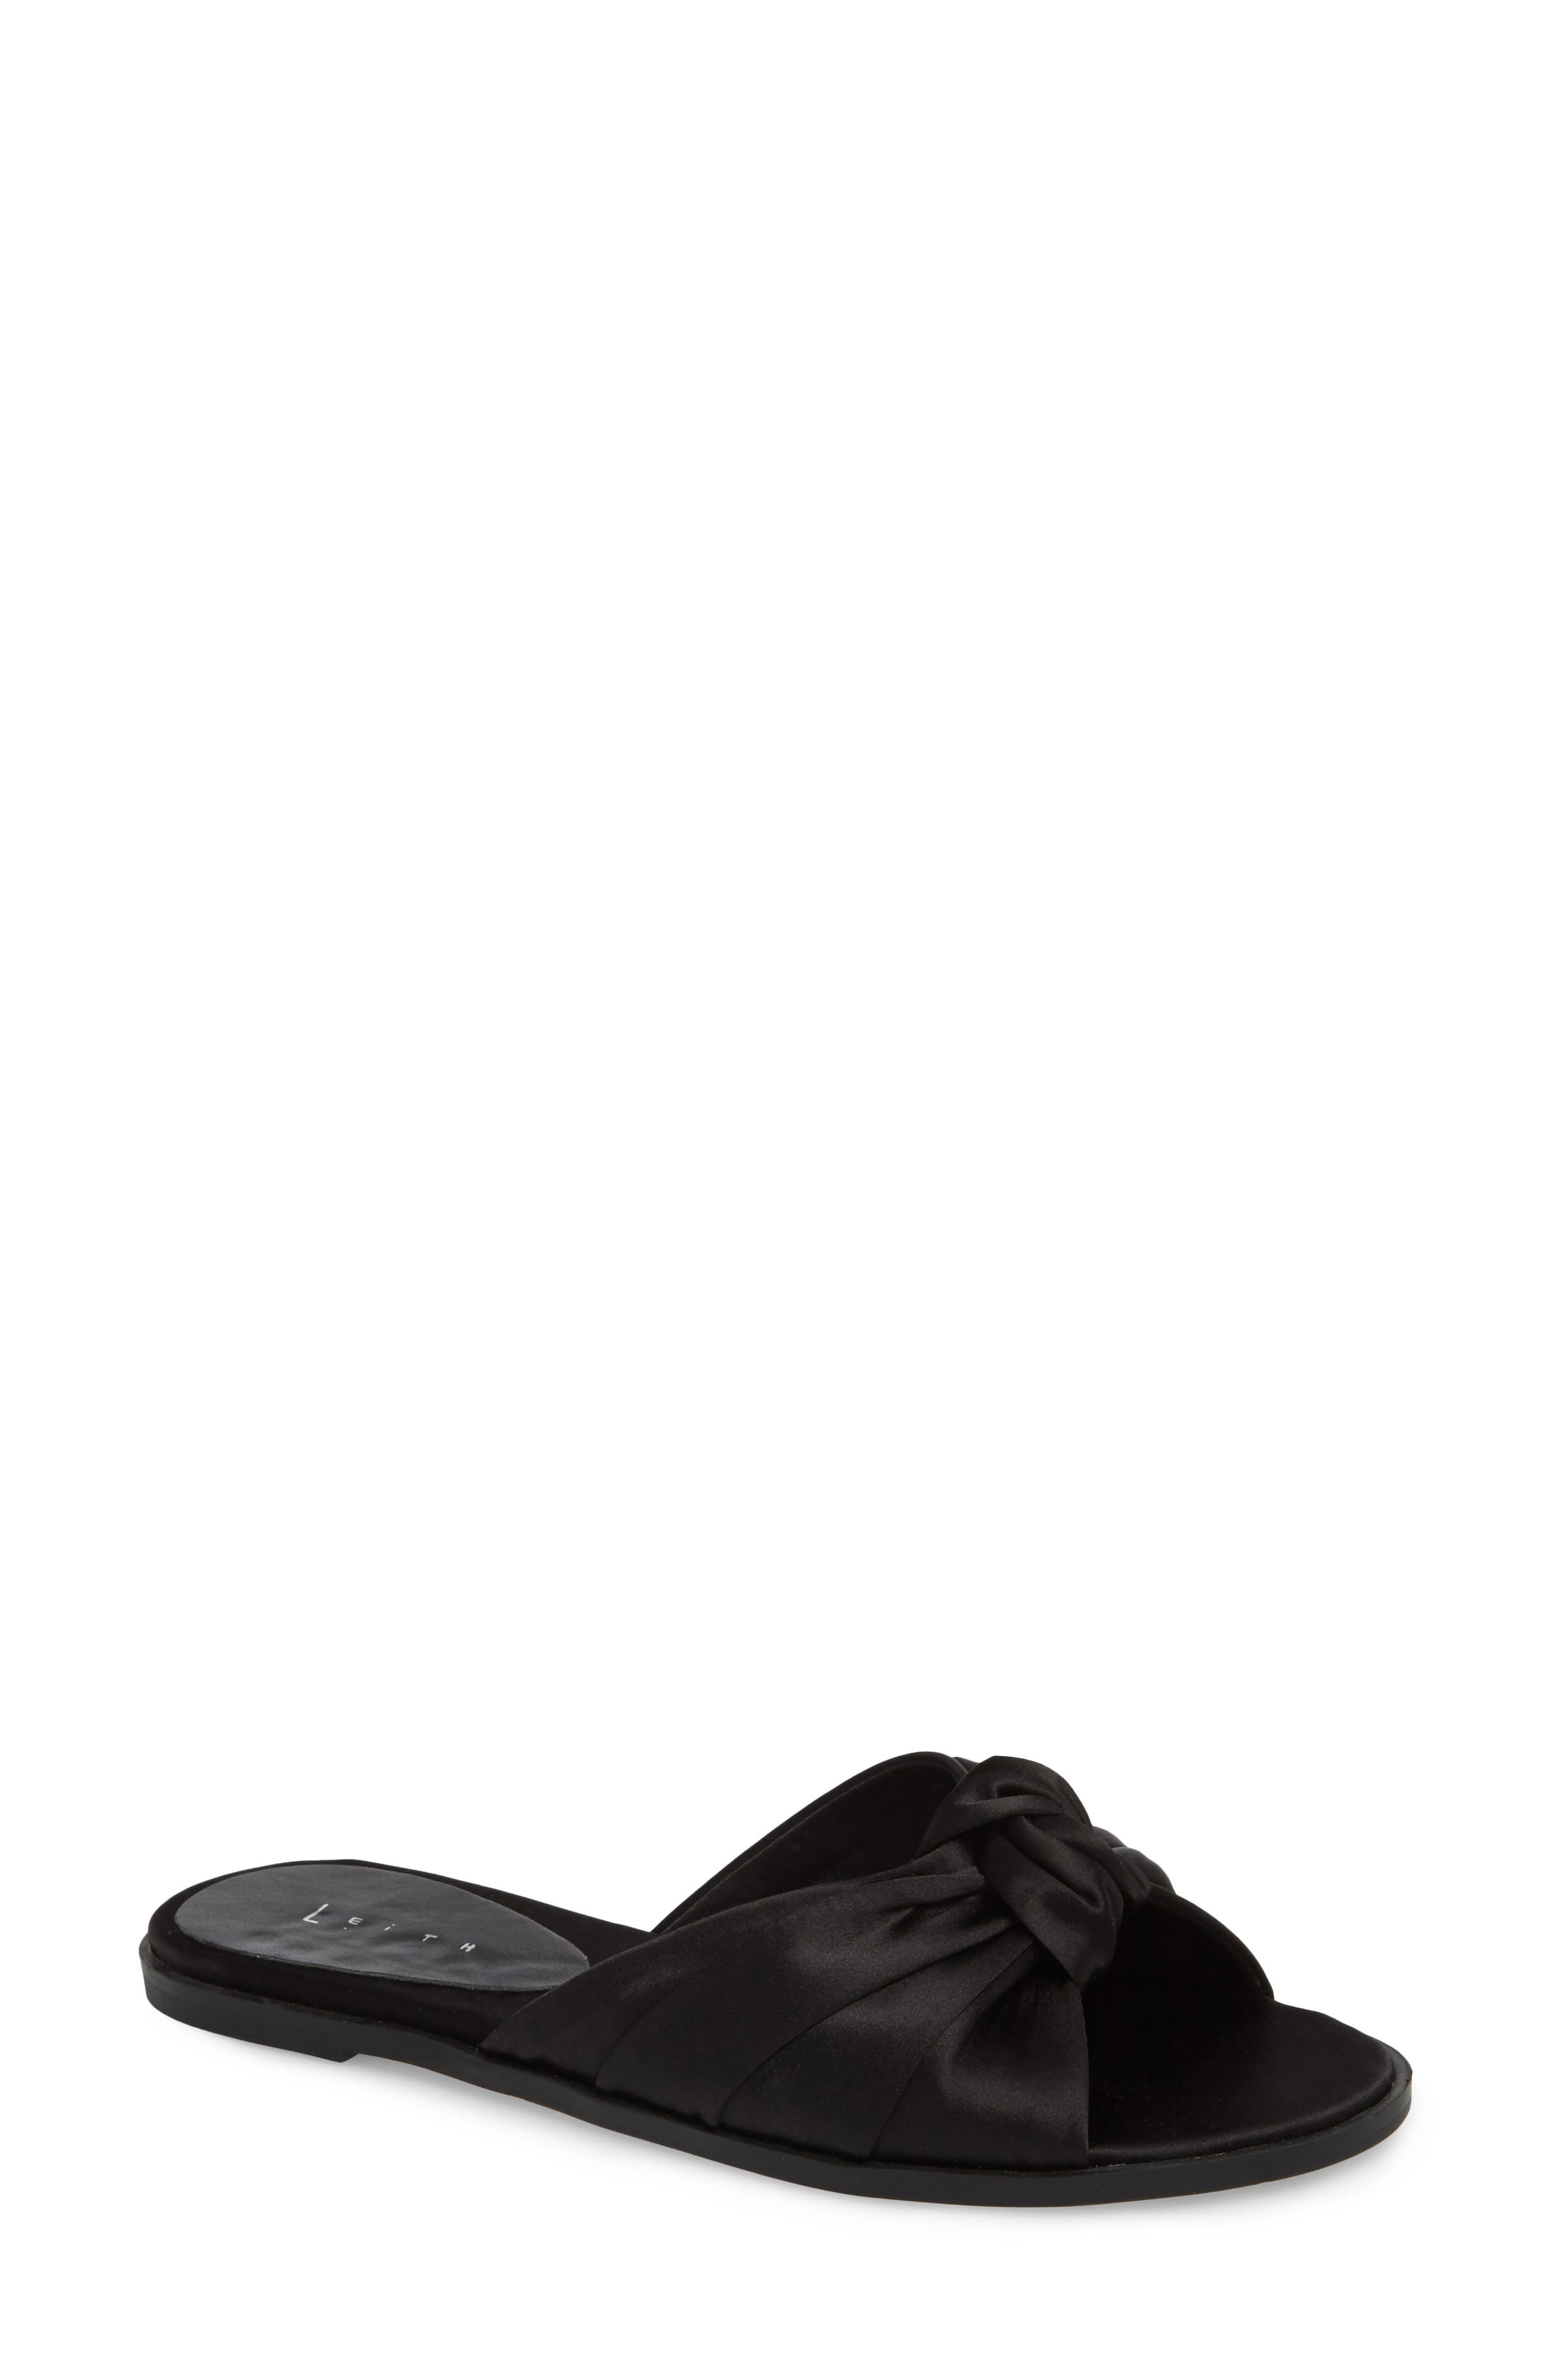 Nevie Knotted Slide Sandal,                         Main,                         color, 002